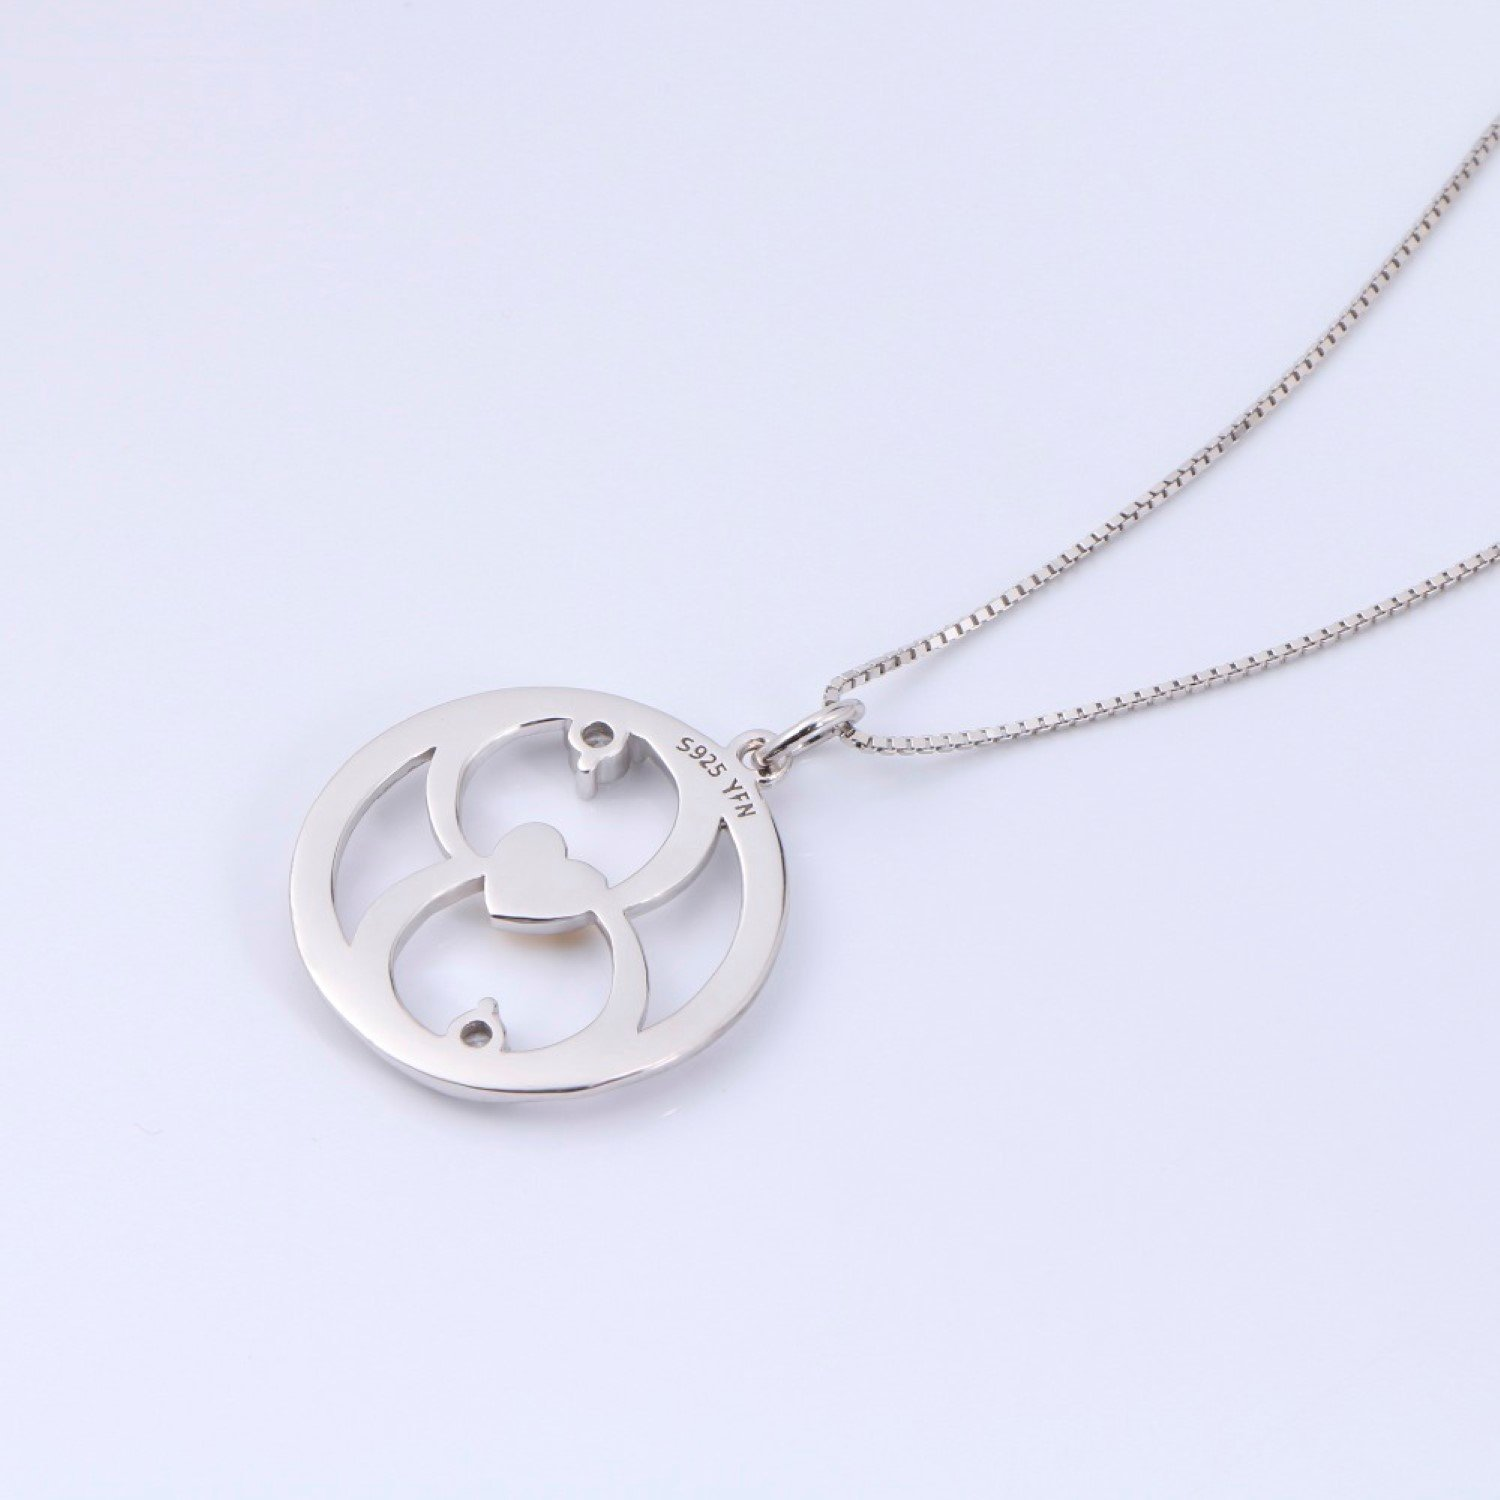 CS-DB Womens Necklaces by Silver Pendant My Mother My Friend Love Heart Luxury Girls Pendent